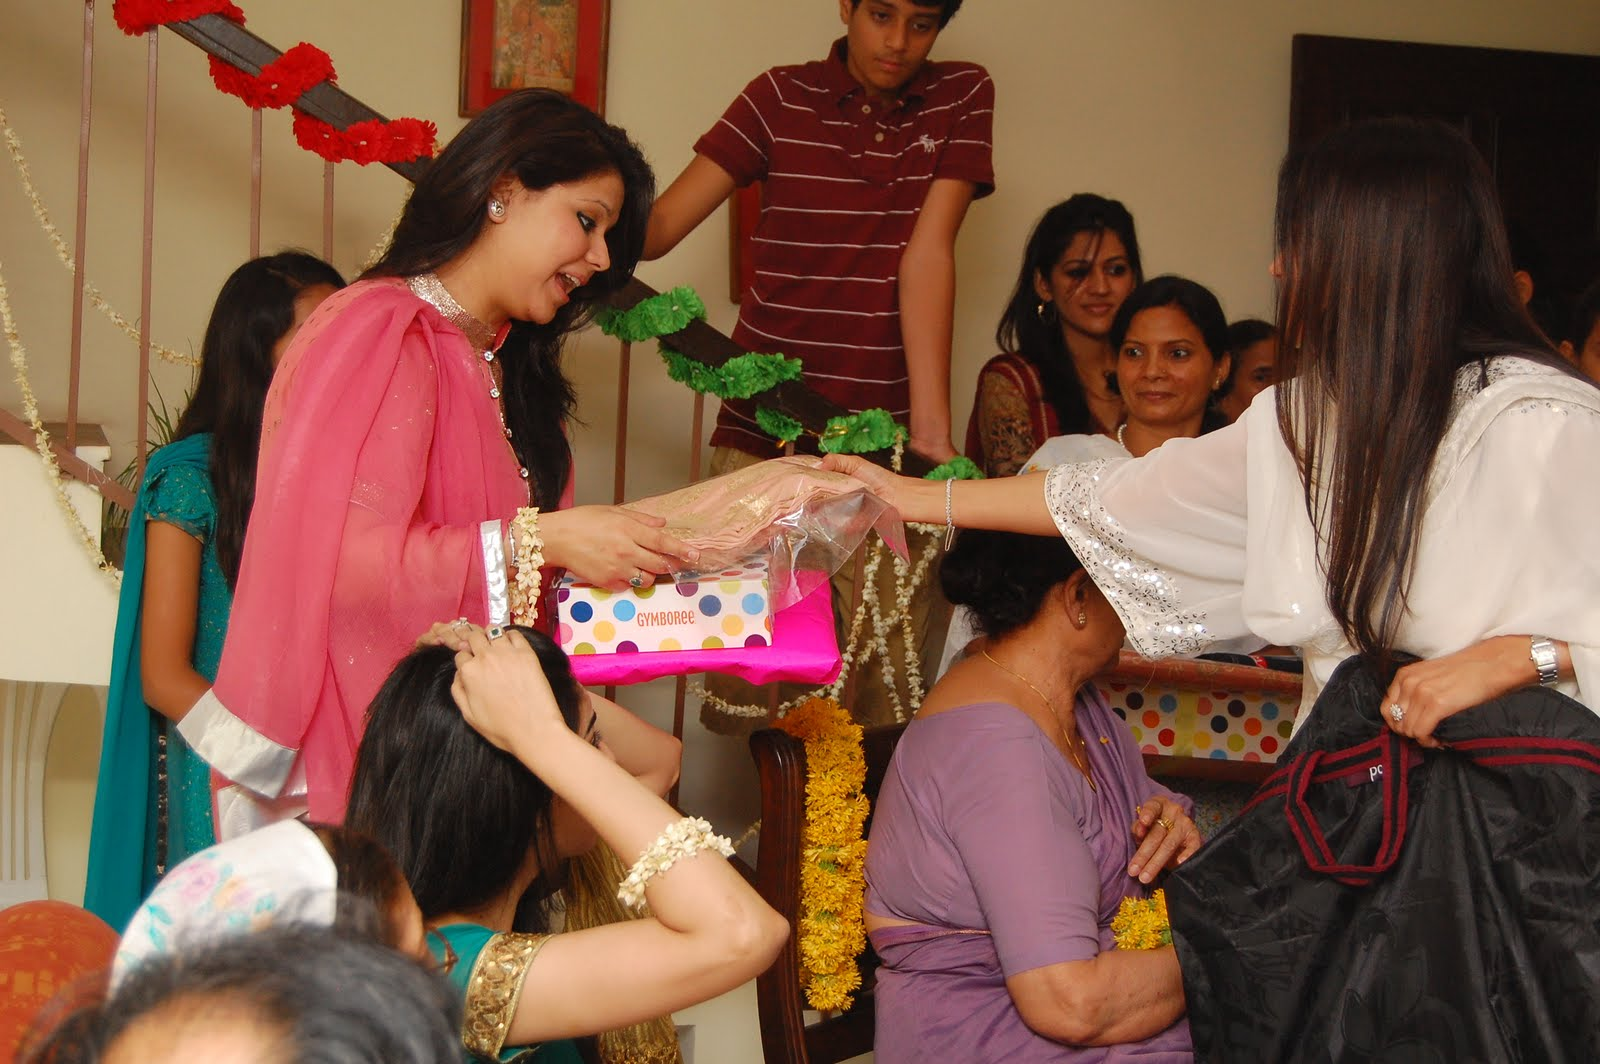 Wedding Gift To Sister In India : my aunt giving the brides sister in law a gift